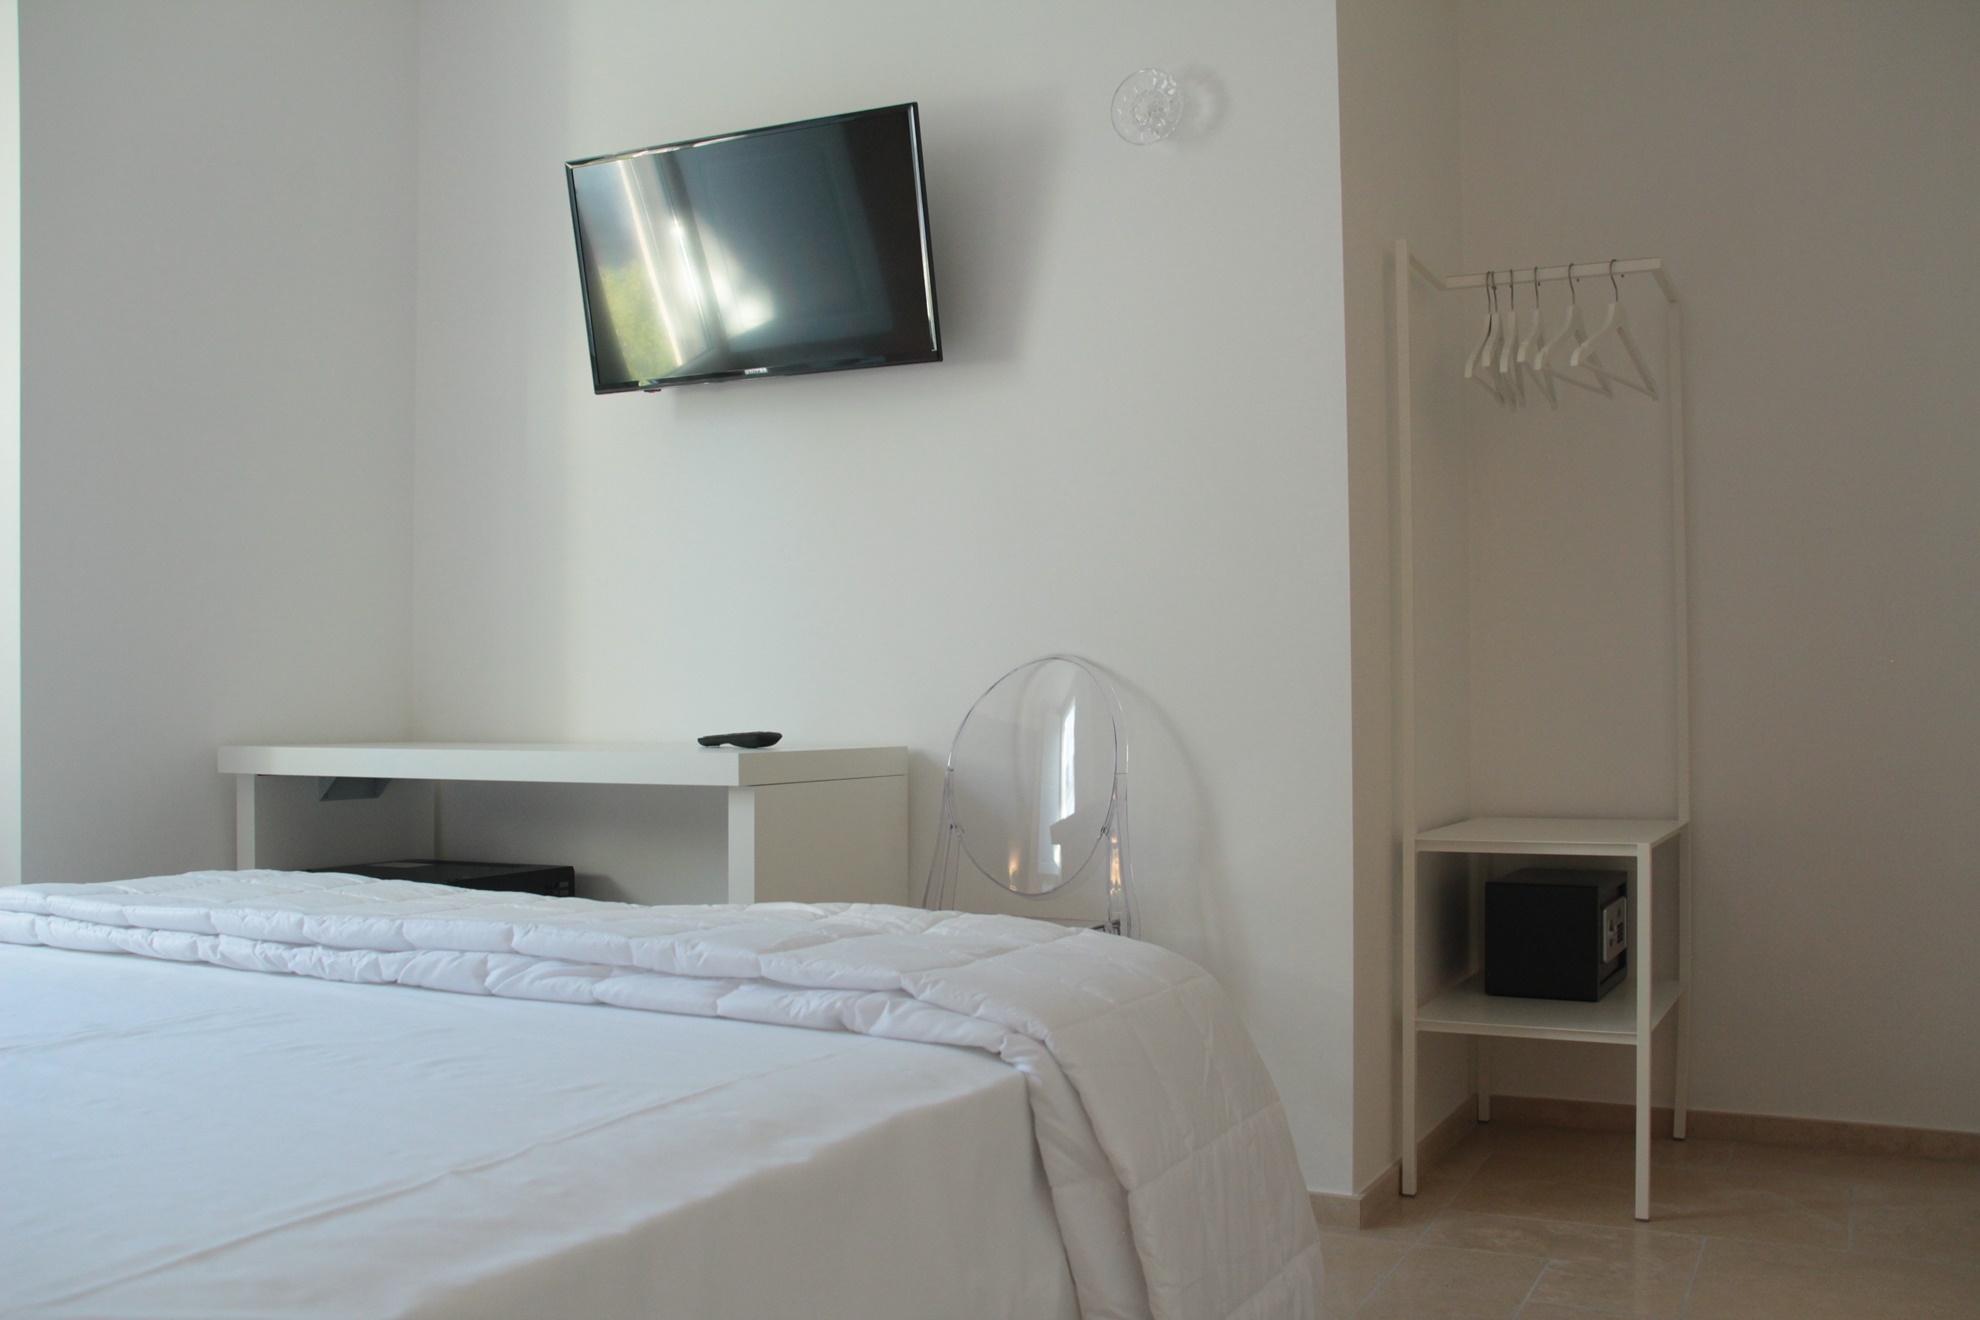 Tv camera da letto cabina armadio http leonardo tv camera - Tv in camera da letto ...